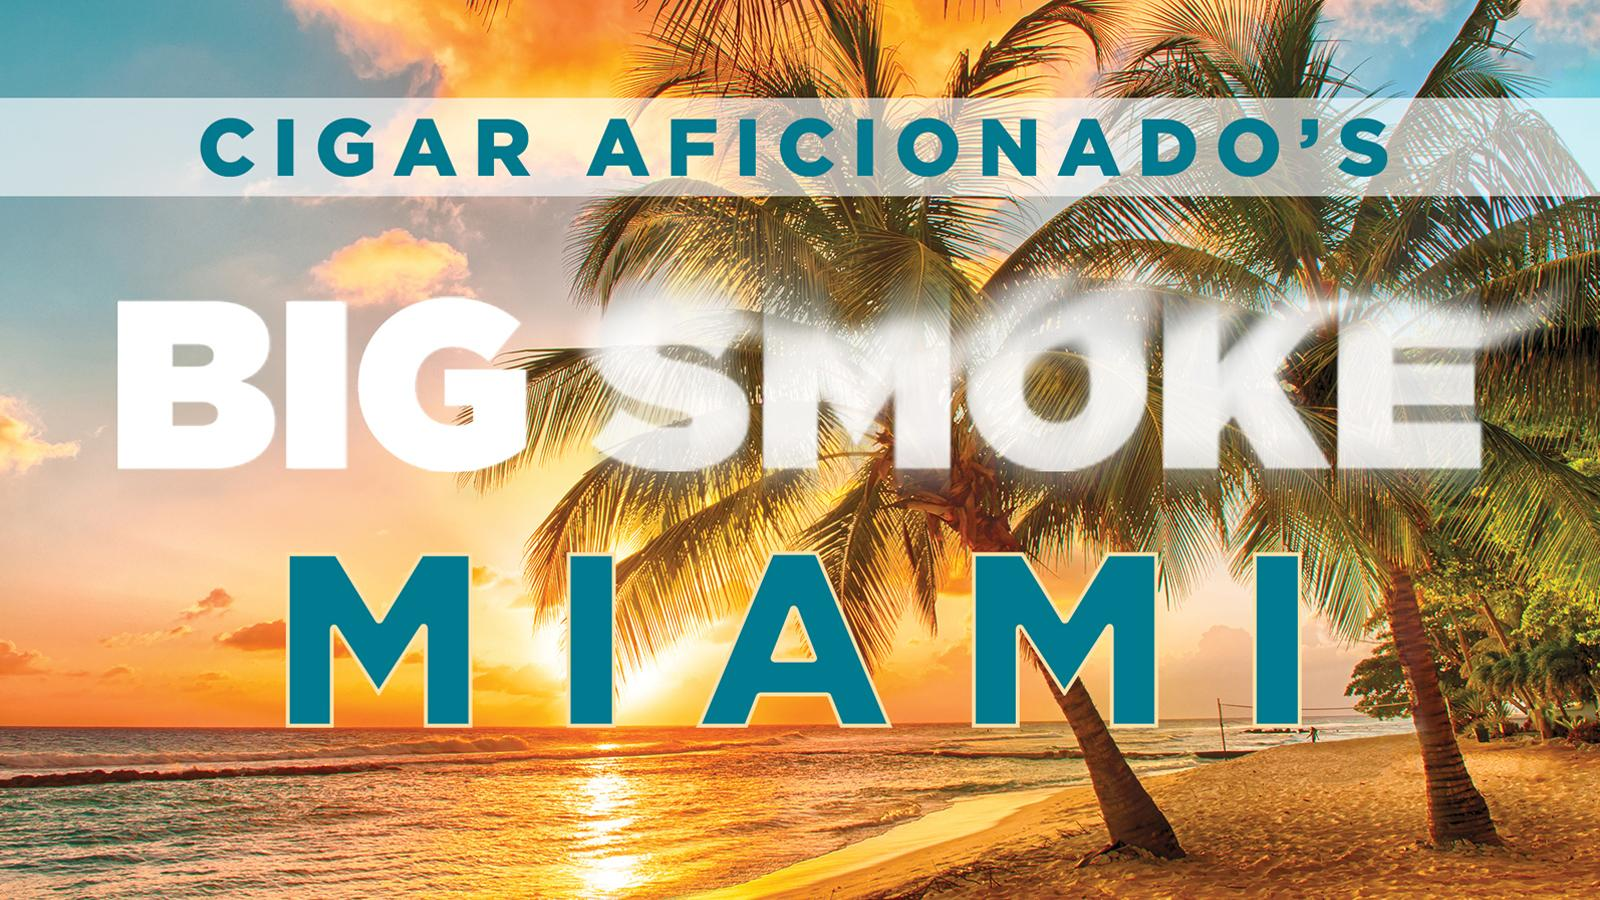 Cigar Stars, Premium Smokes and Libations Coming To Big Smoke Miami